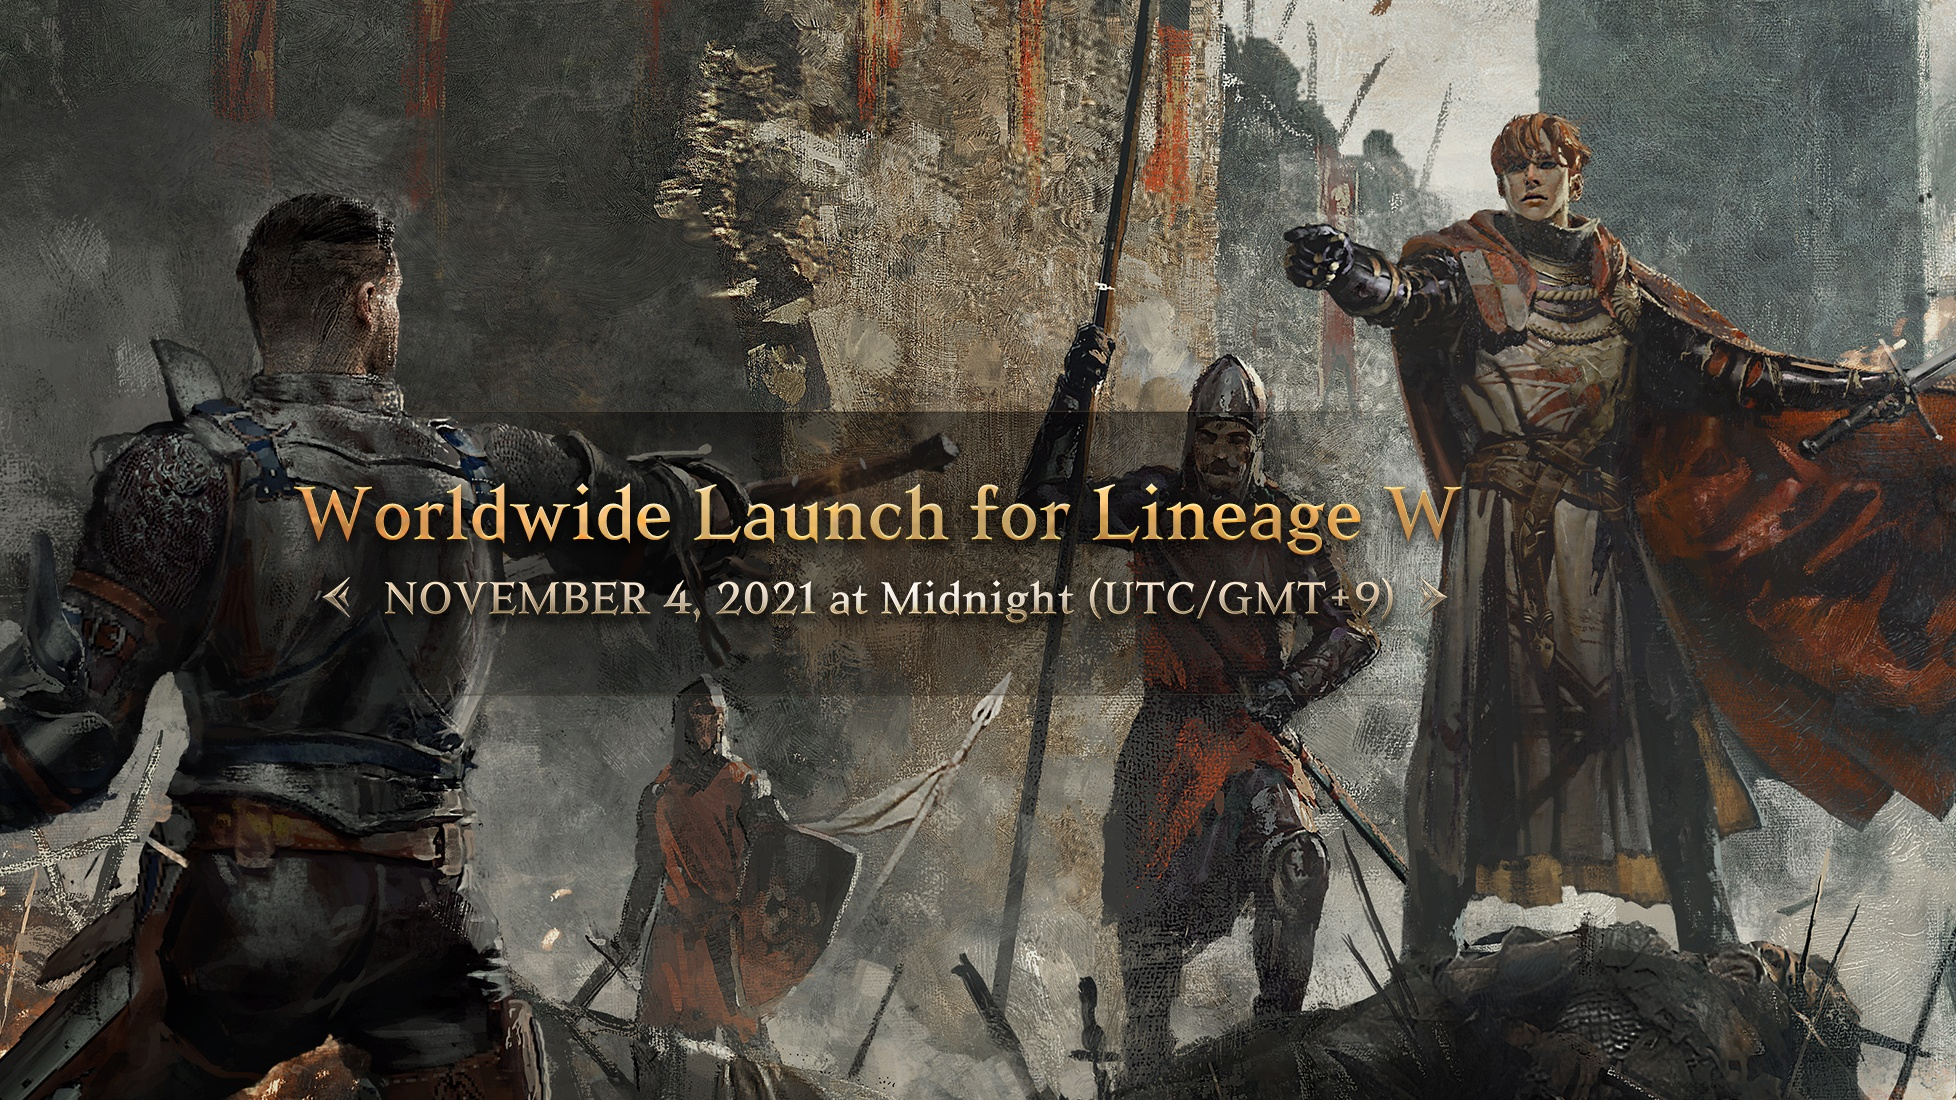 NCSOFT's Lineage W Soon To Globally Release On November 4